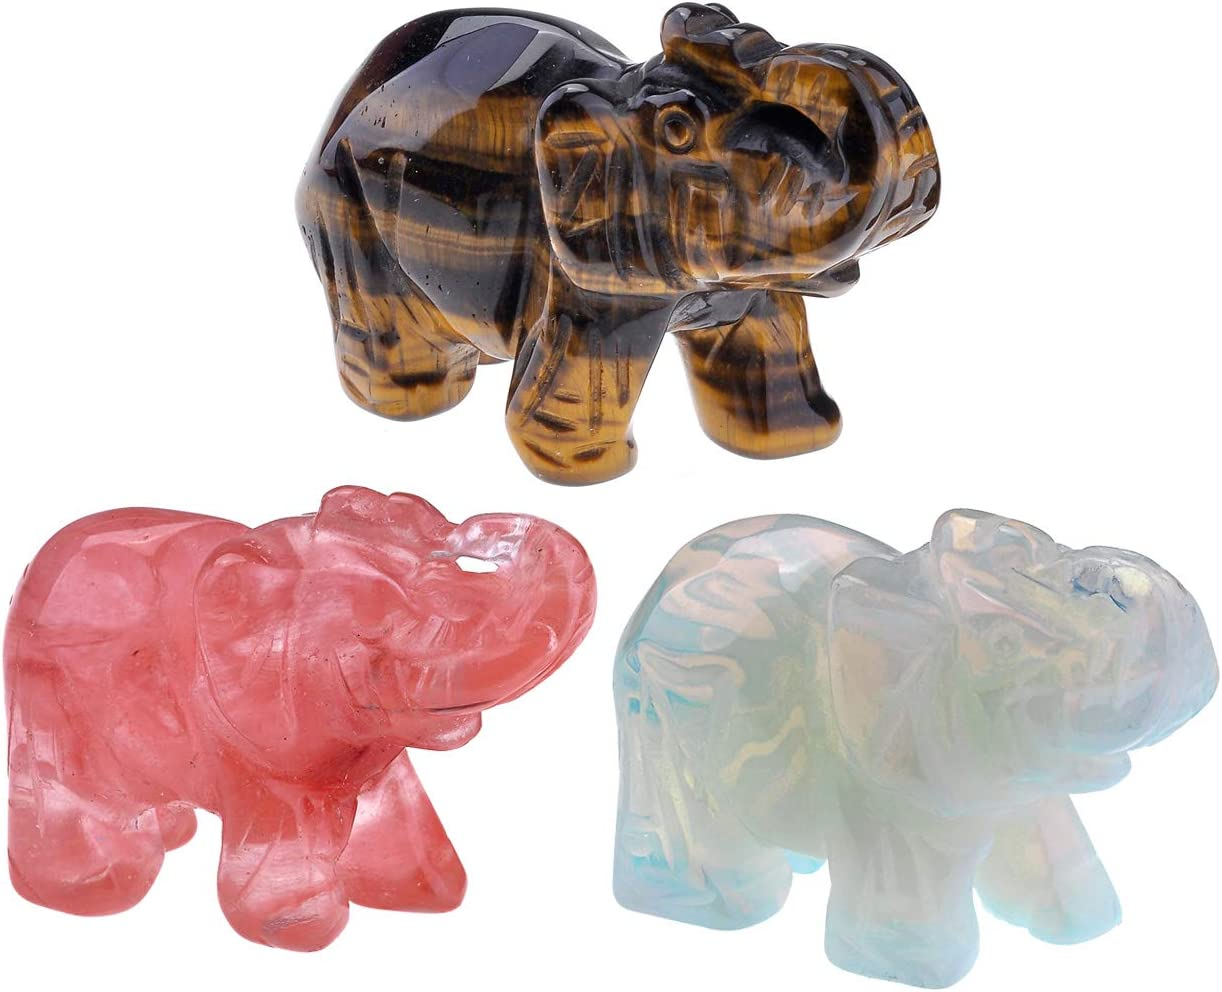 Top Plaza 3pcs Healing Crystal Stones Elephant Figurines Reiki Gemstone Crafts Statues Elephant Gifts Collectible Decor for Home Office Desk 1.5 inches (Cherry Quartz & Tiger Eye Stone & Opal)